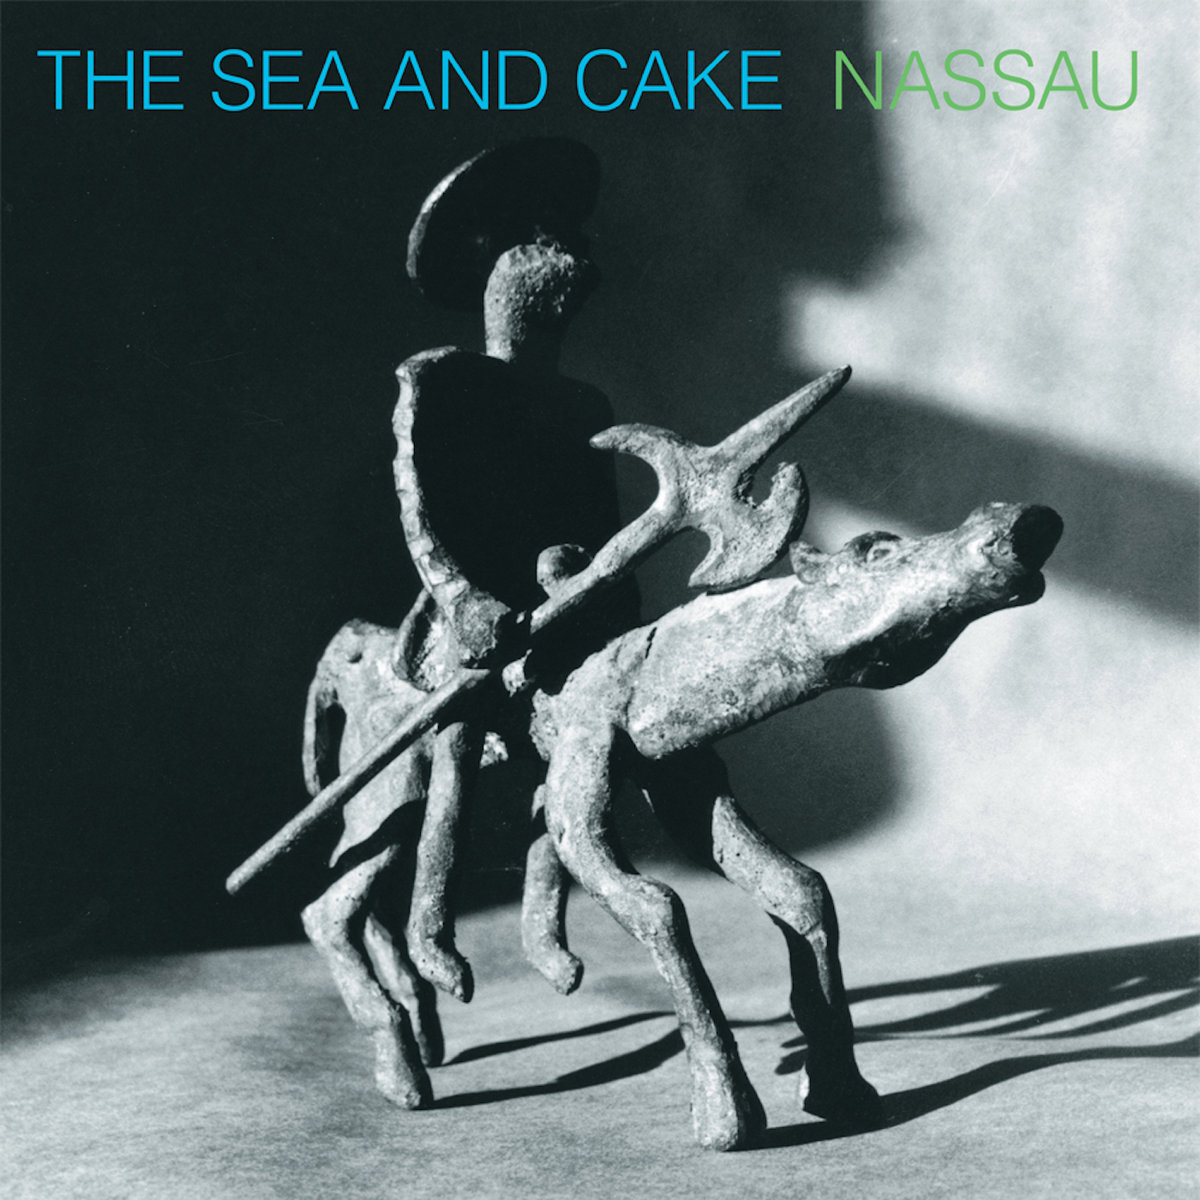 Parasol The Sea And Cake